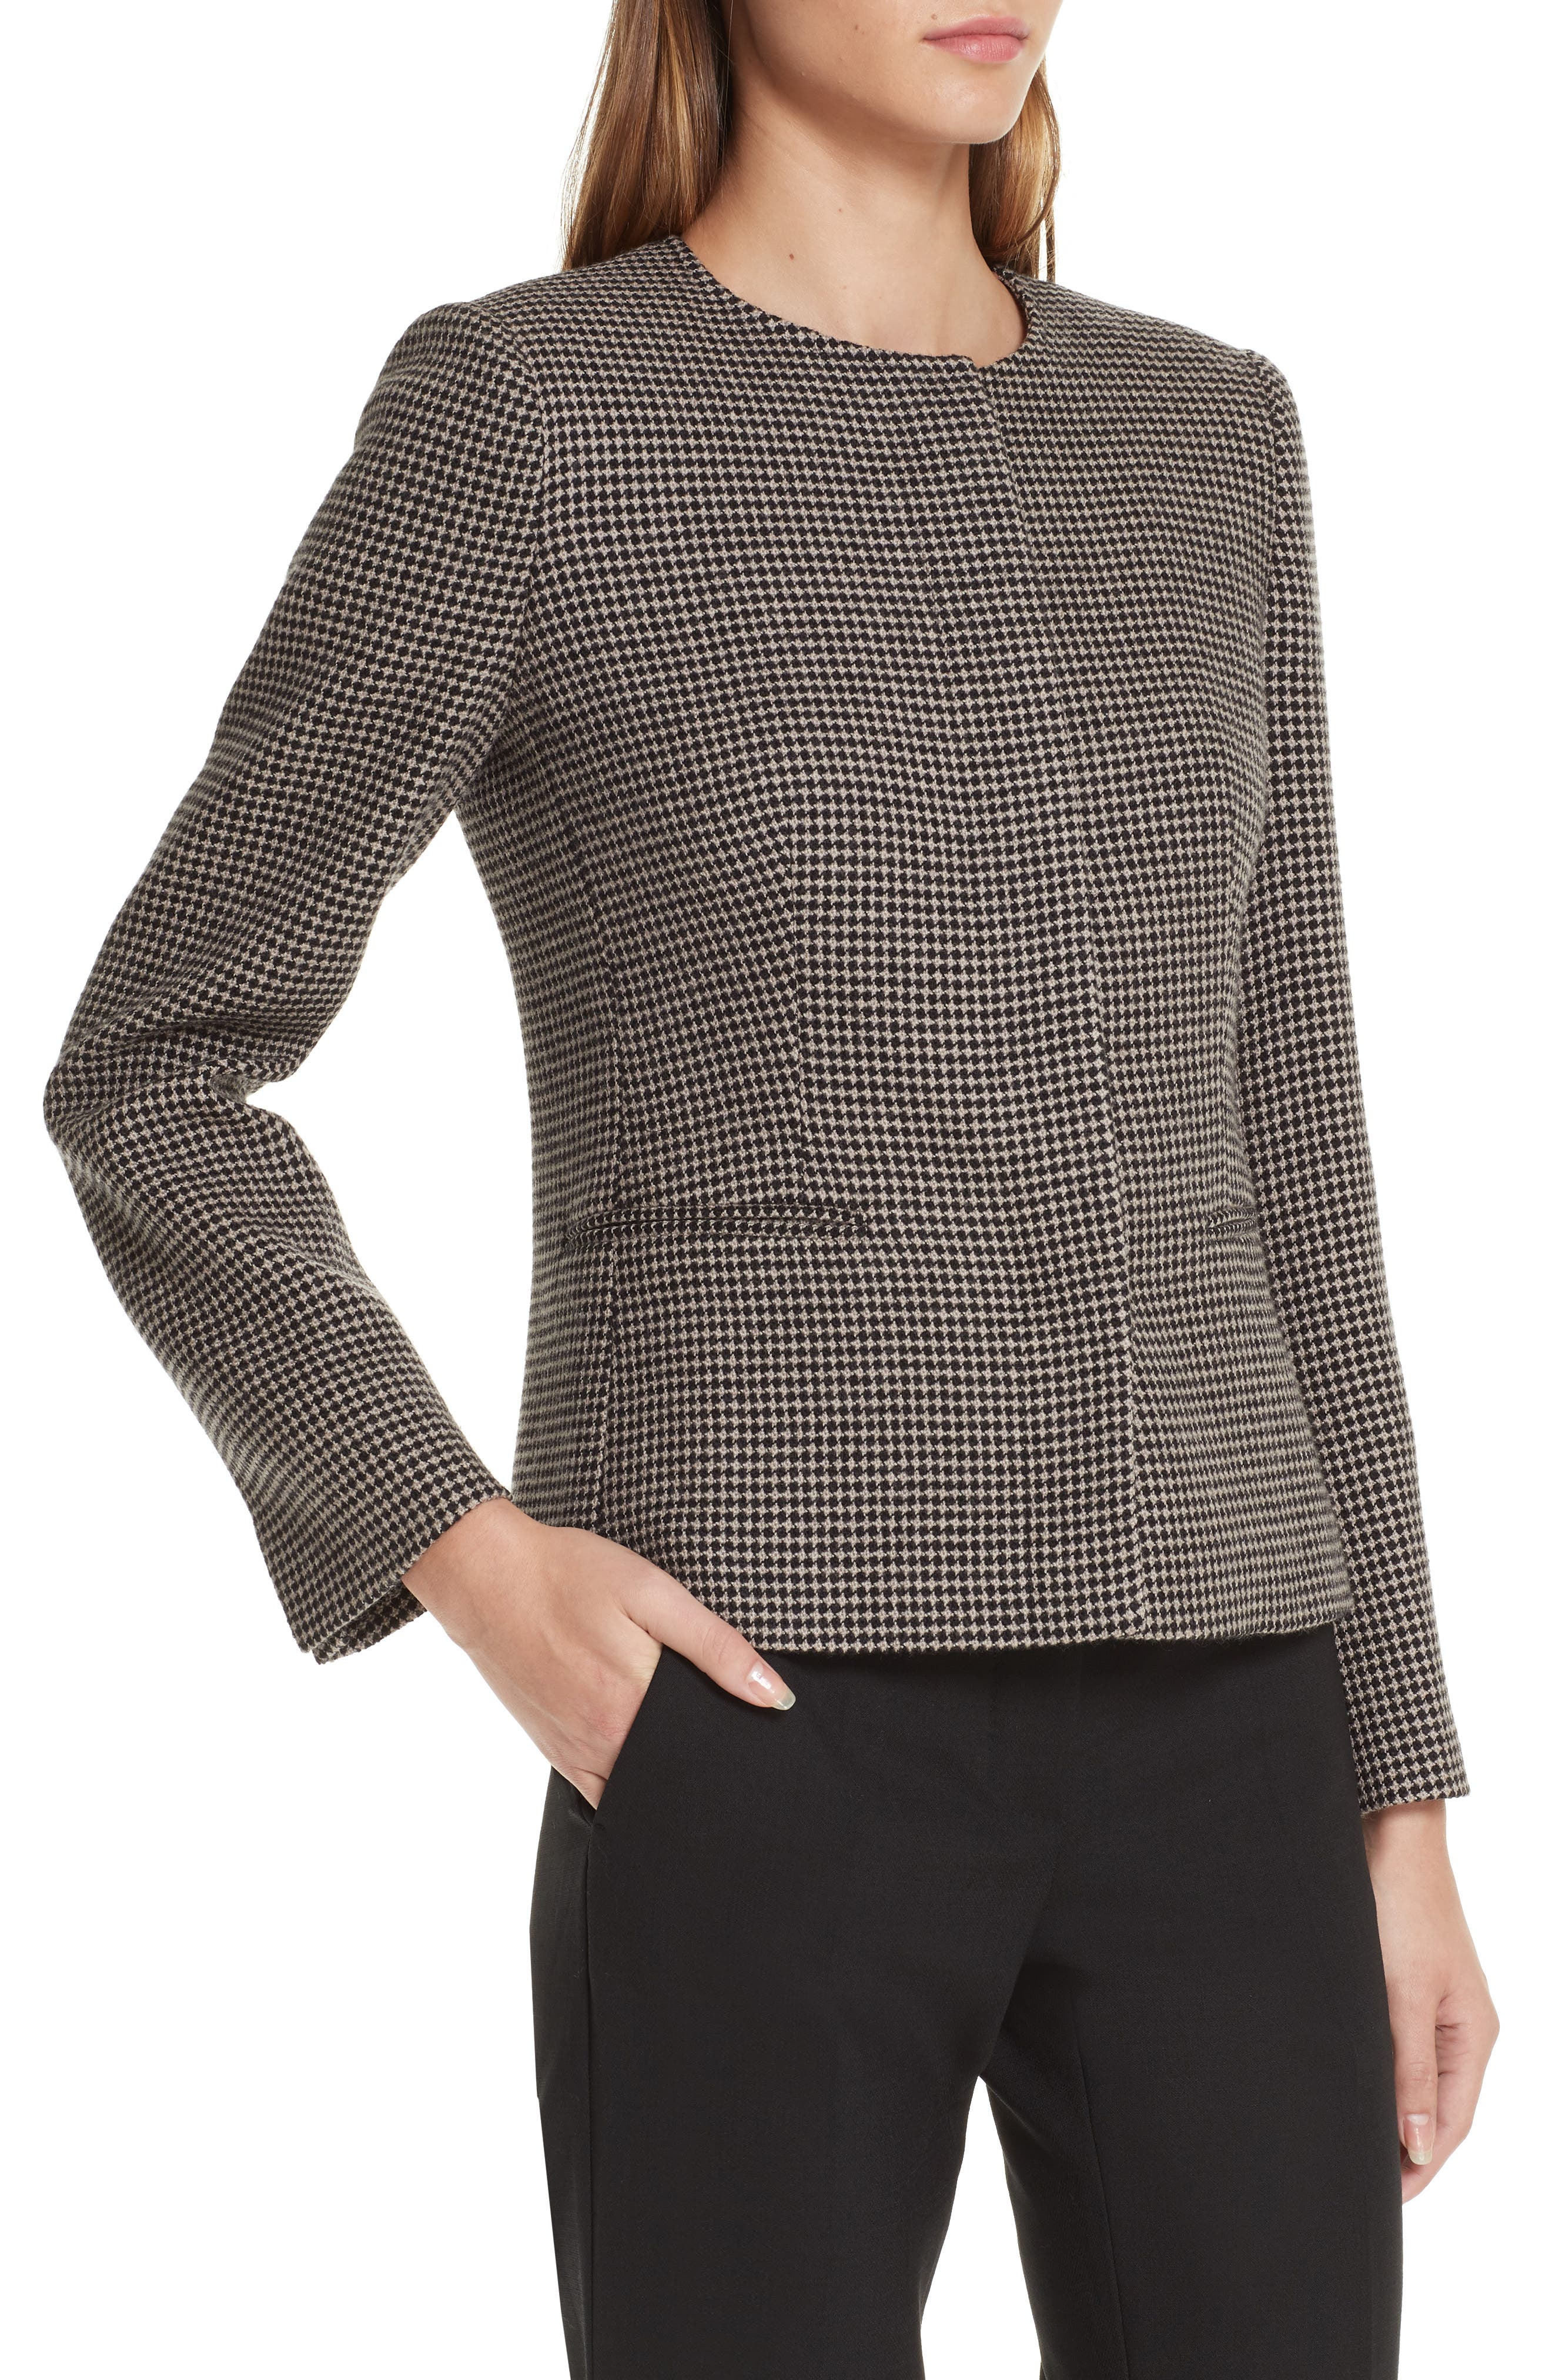 Spigola Wool & Cashmere Jacket,                             Alternate thumbnail 4, color,                             TURTLEDOVE